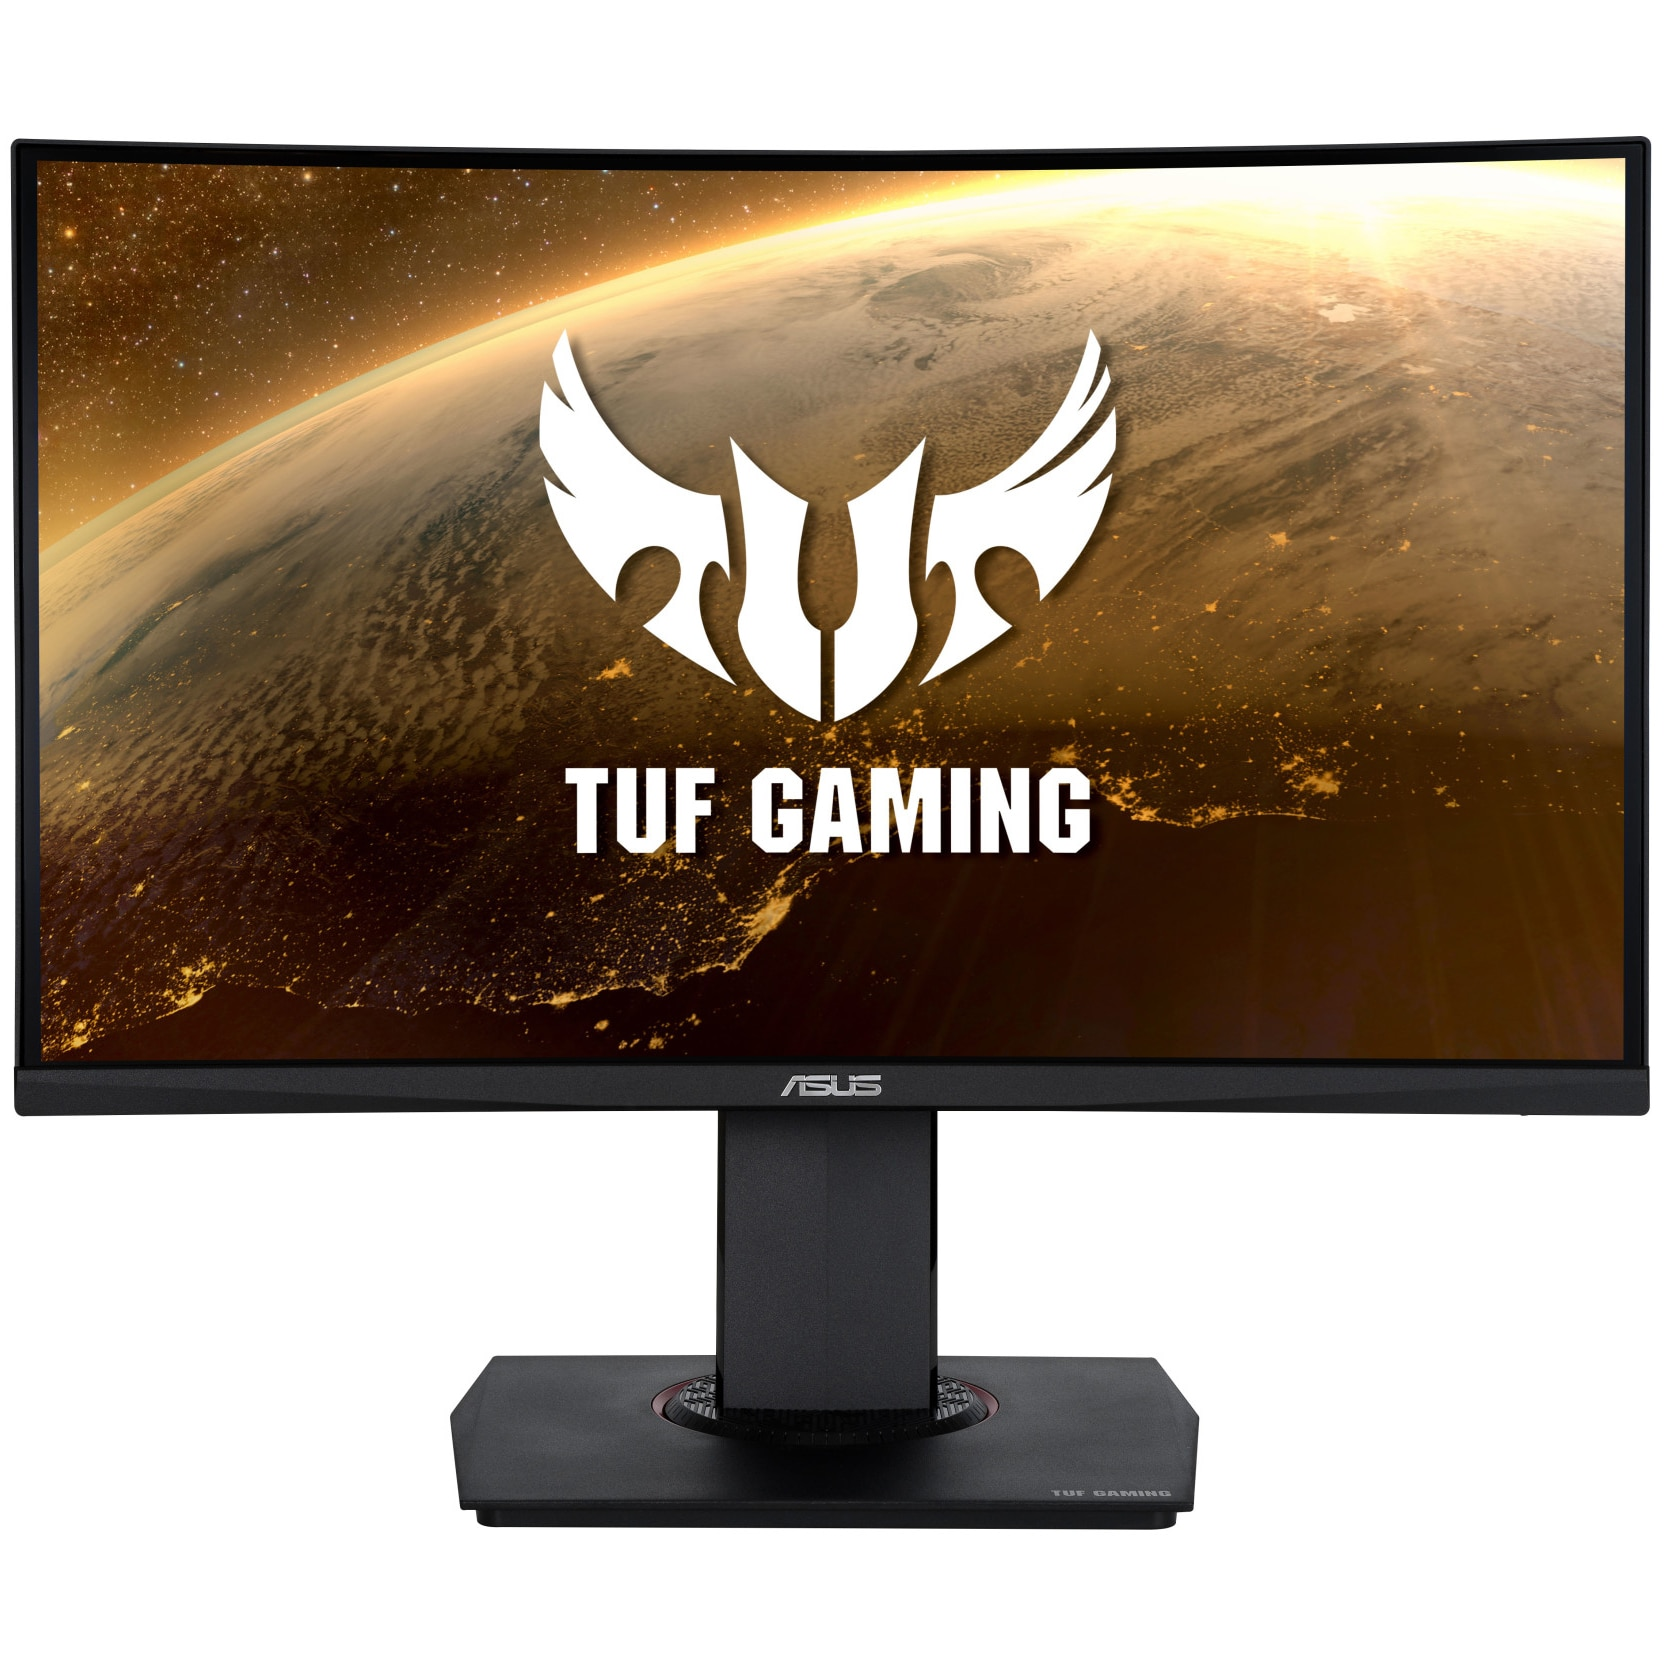 "Fotografie Monitor Curbat Gaming LED VA Asus TUF 23.6"", 144Hz, 1ms, Full HD, Display Port, FreeSync, Negru, Pivot, VG24VQ"